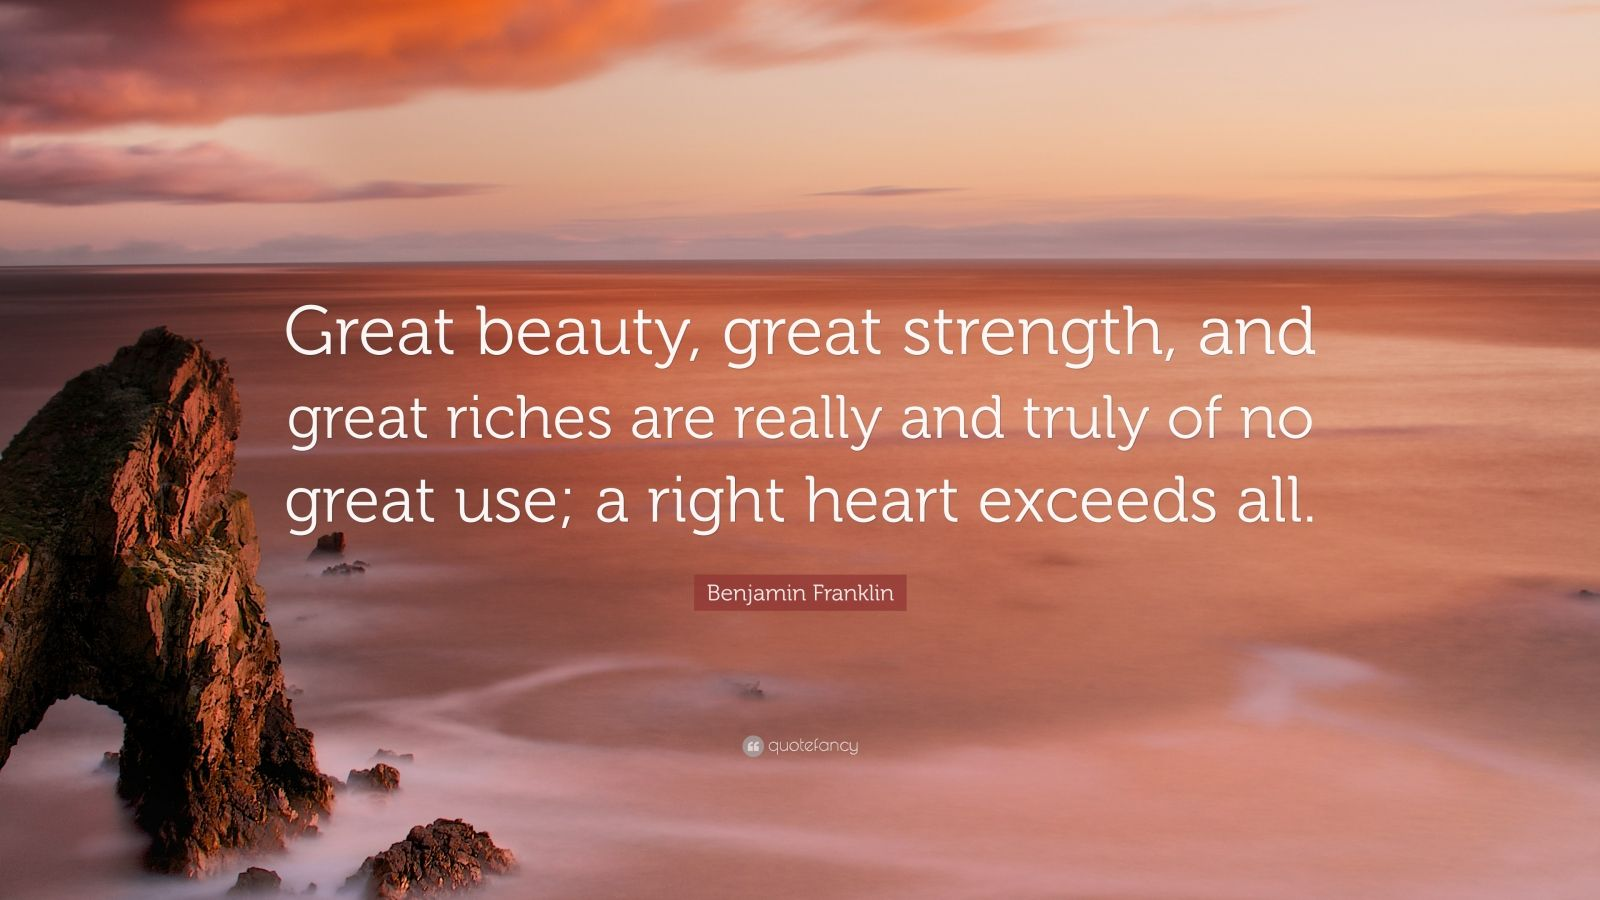 """Benjamin Franklin Quote: """"Great beauty, great strength, and great riches are really and truly of no great use; a right heart exceeds all."""""""